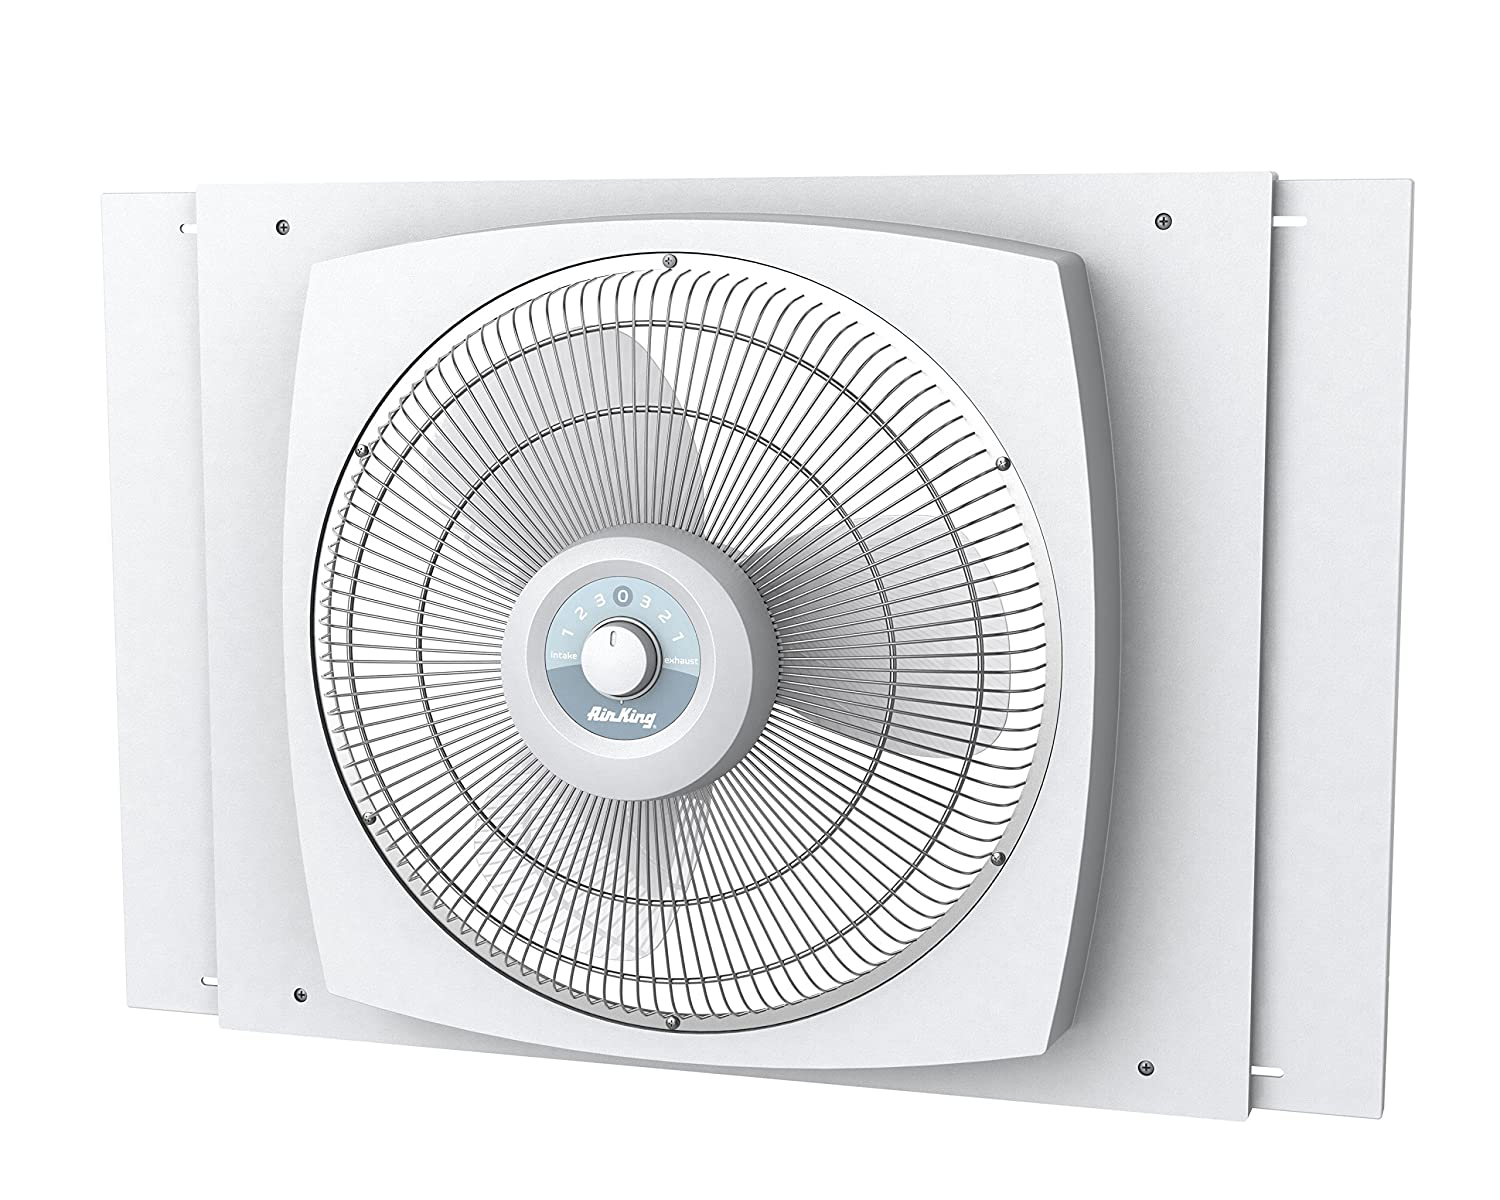 Air King 9155 Storm Guard Window Fan, 16-Inch